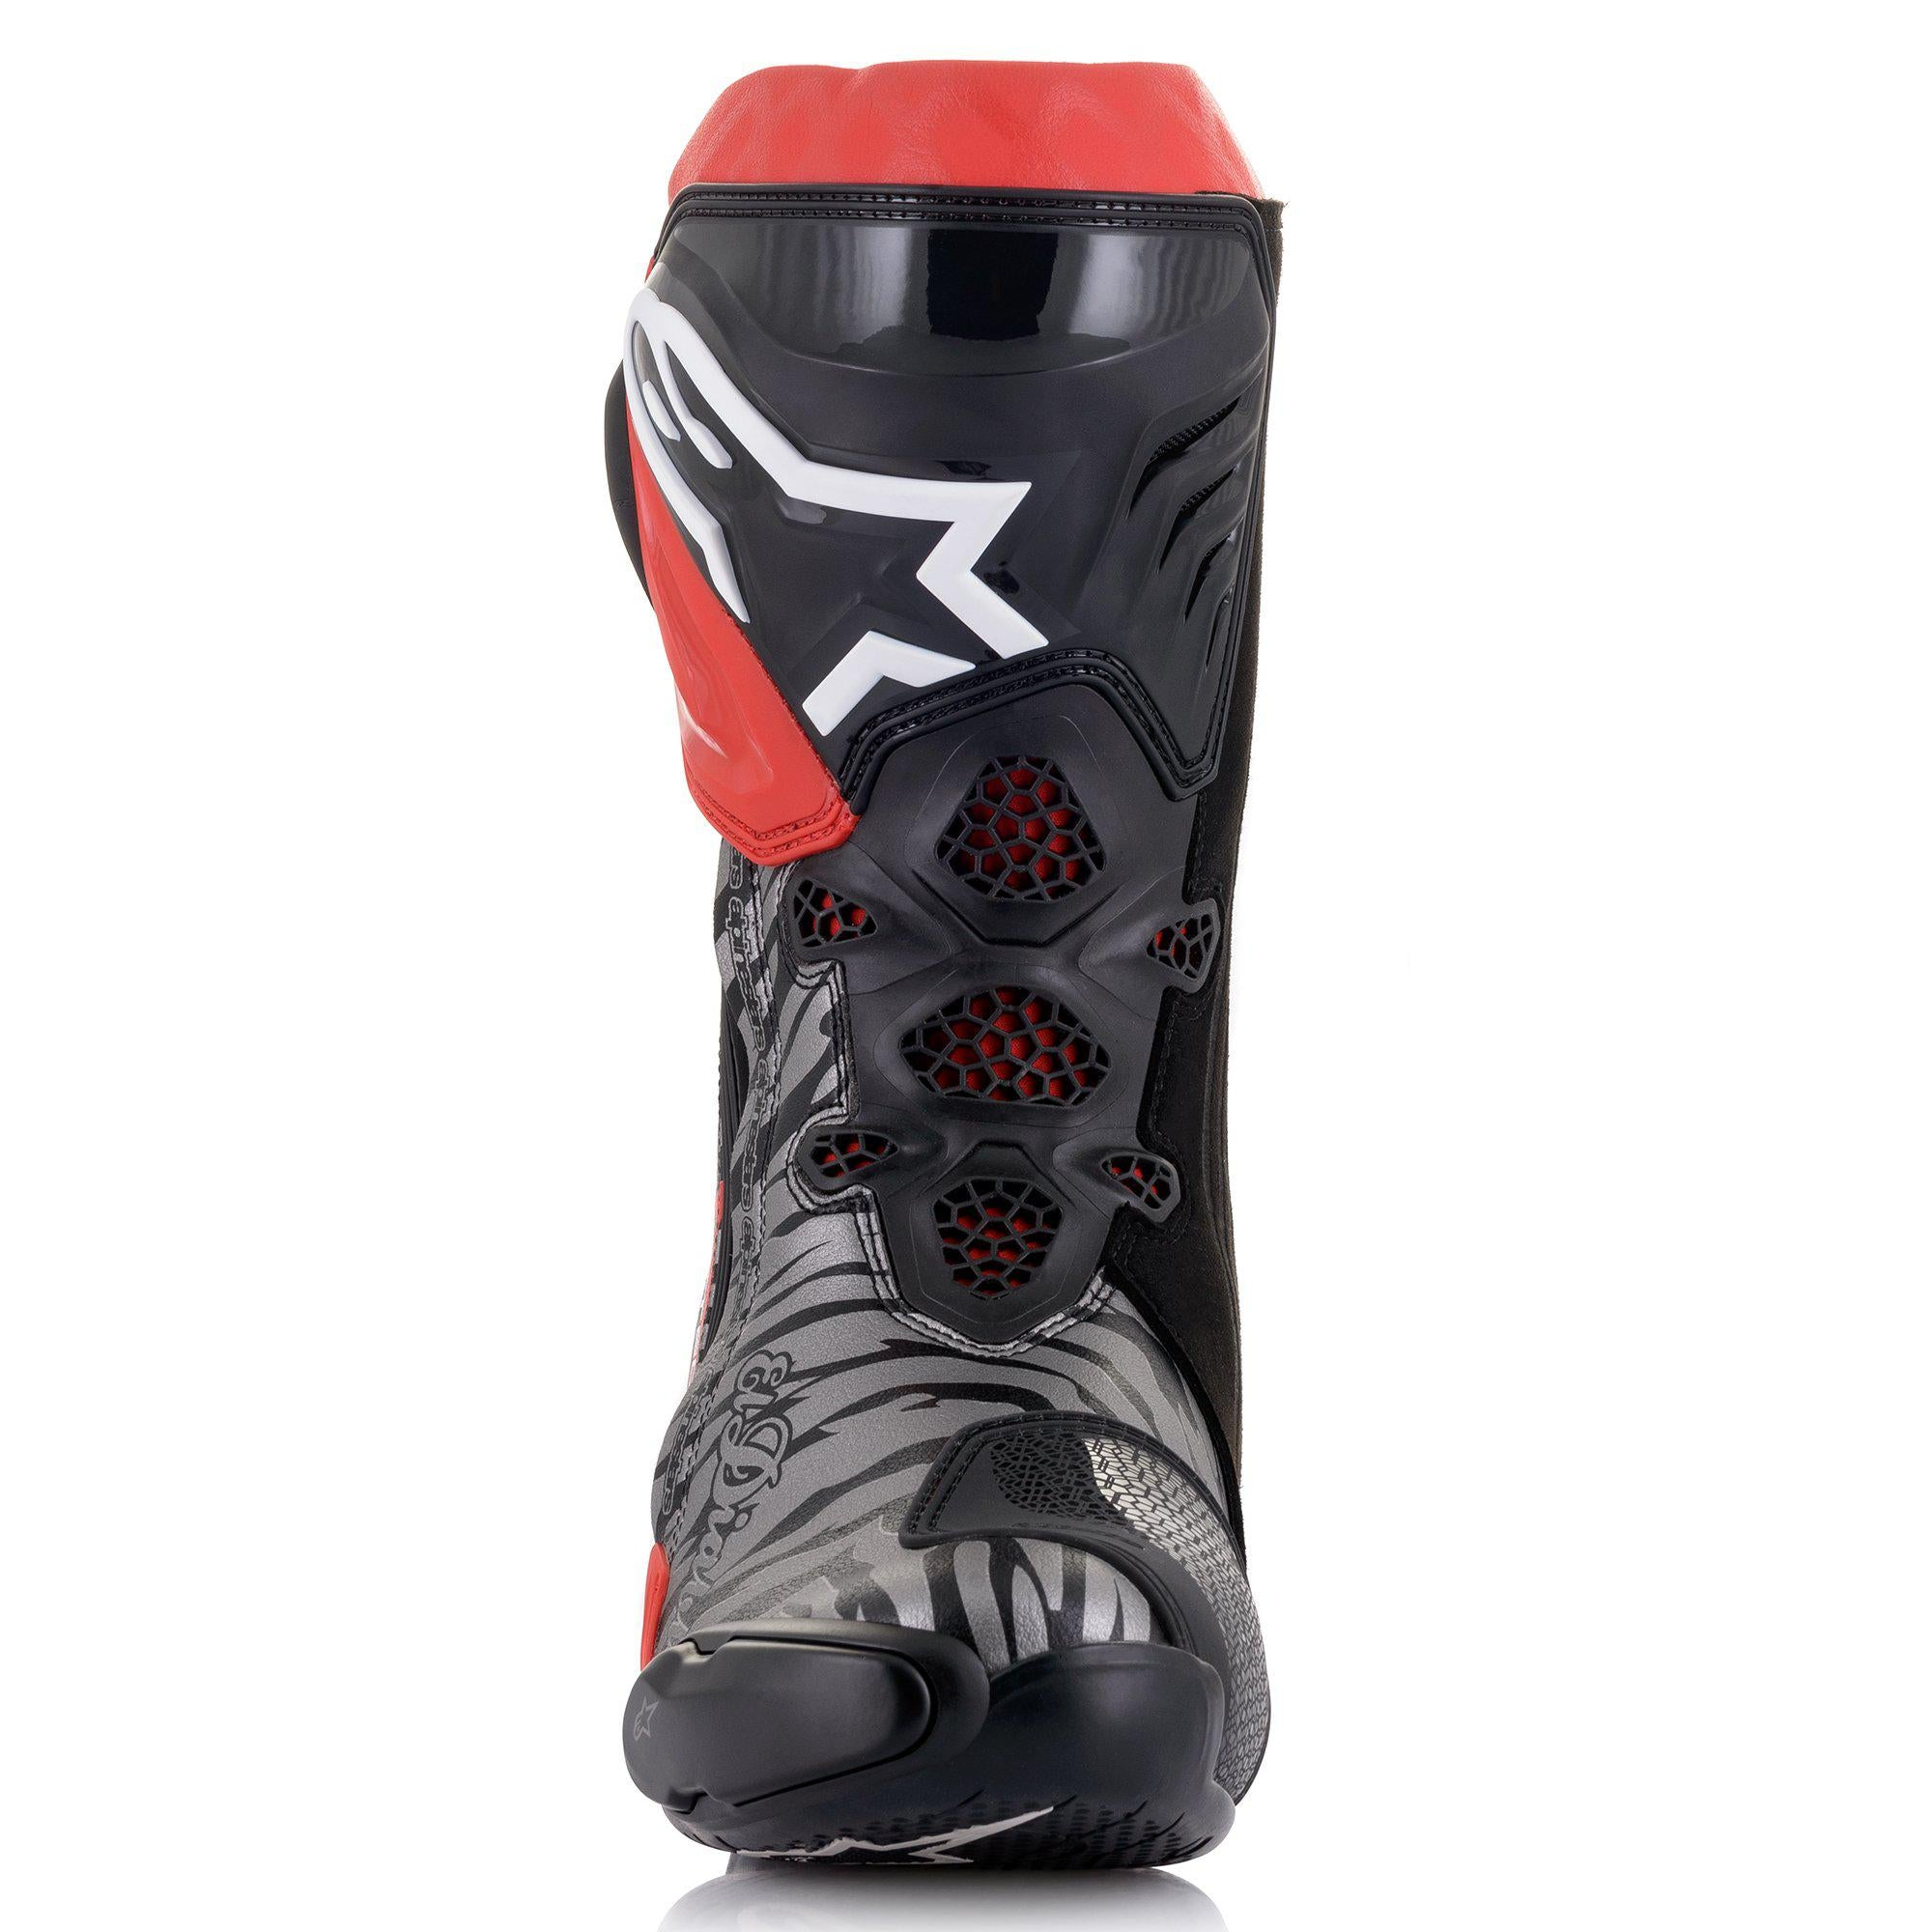 Limited Edition El Diablo 2020 Supertech R Boots